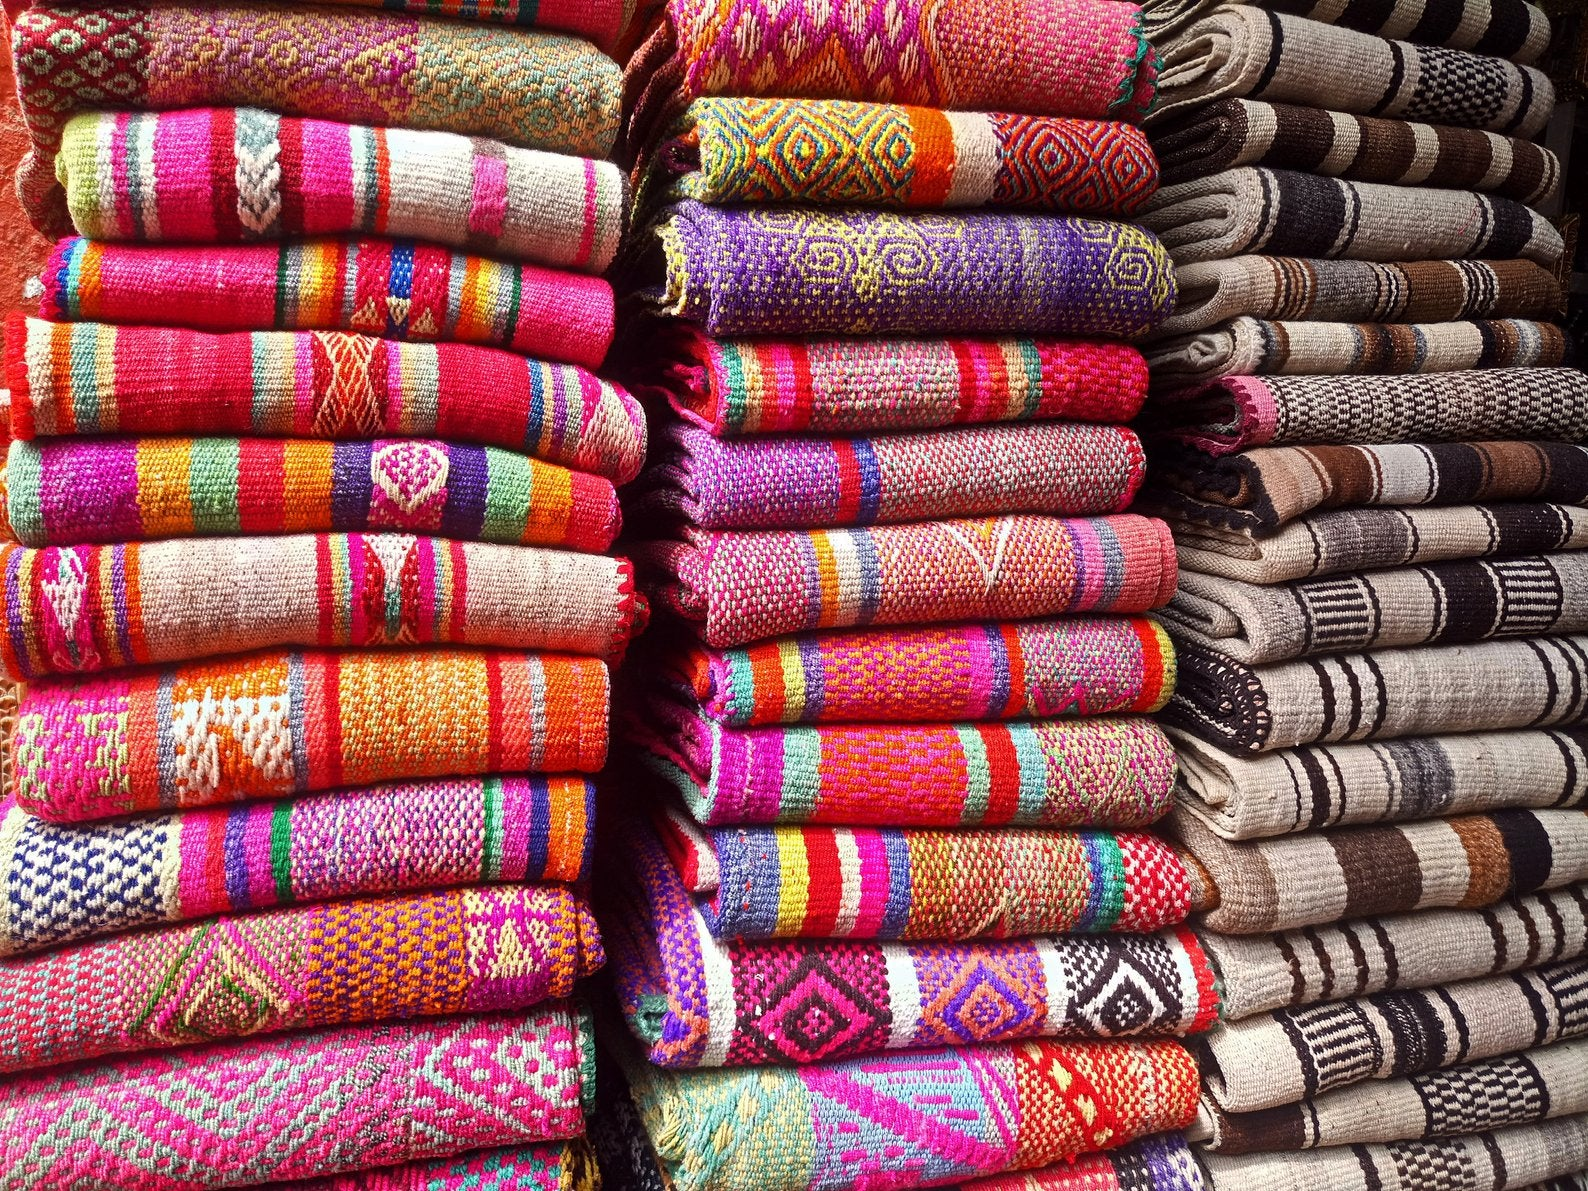 Peruvian colorful blankets